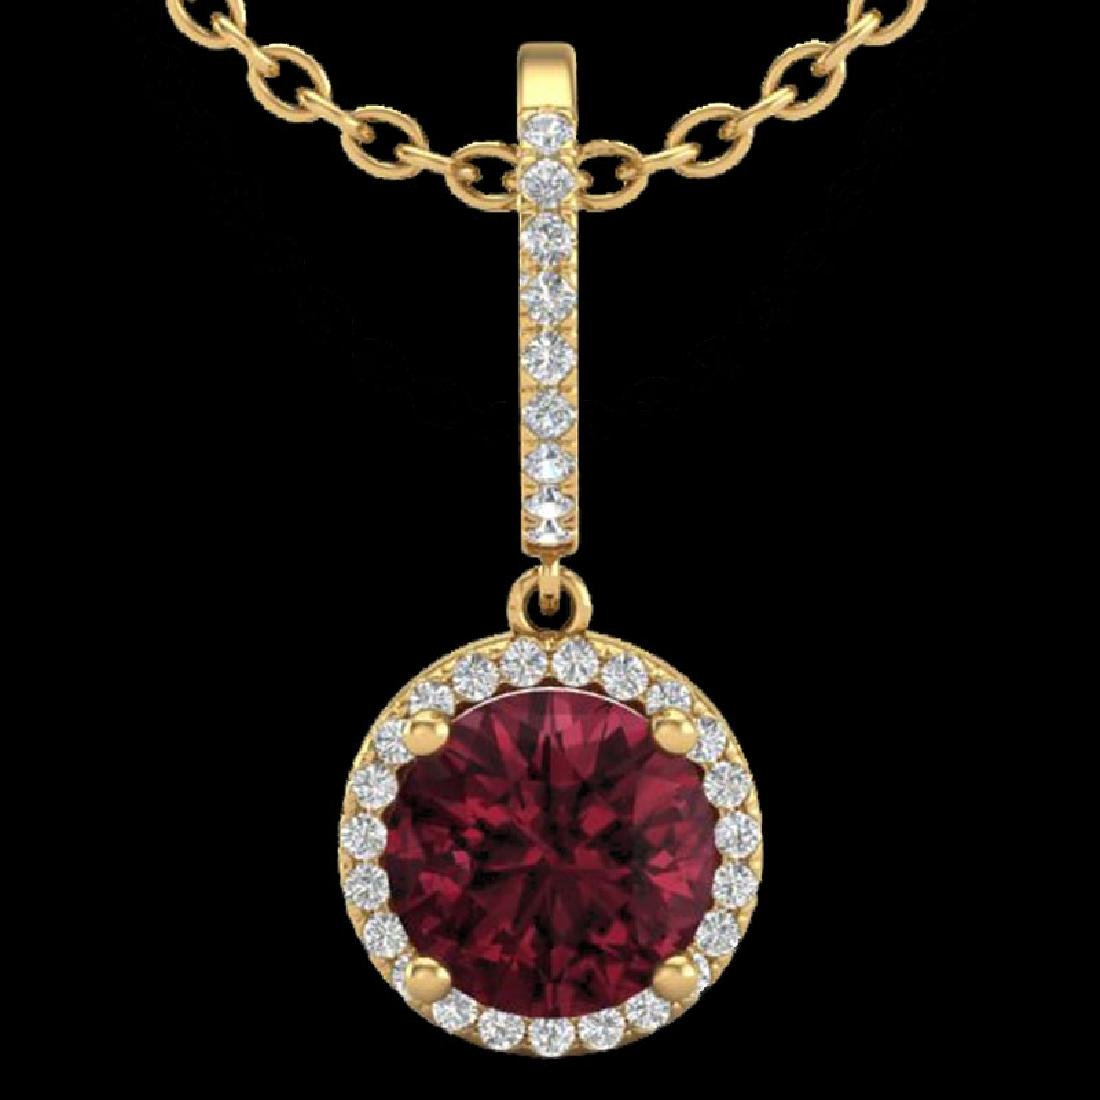 2.75 CTW Garnet & Micro Pave VS/SI Diamond Necklace - 2